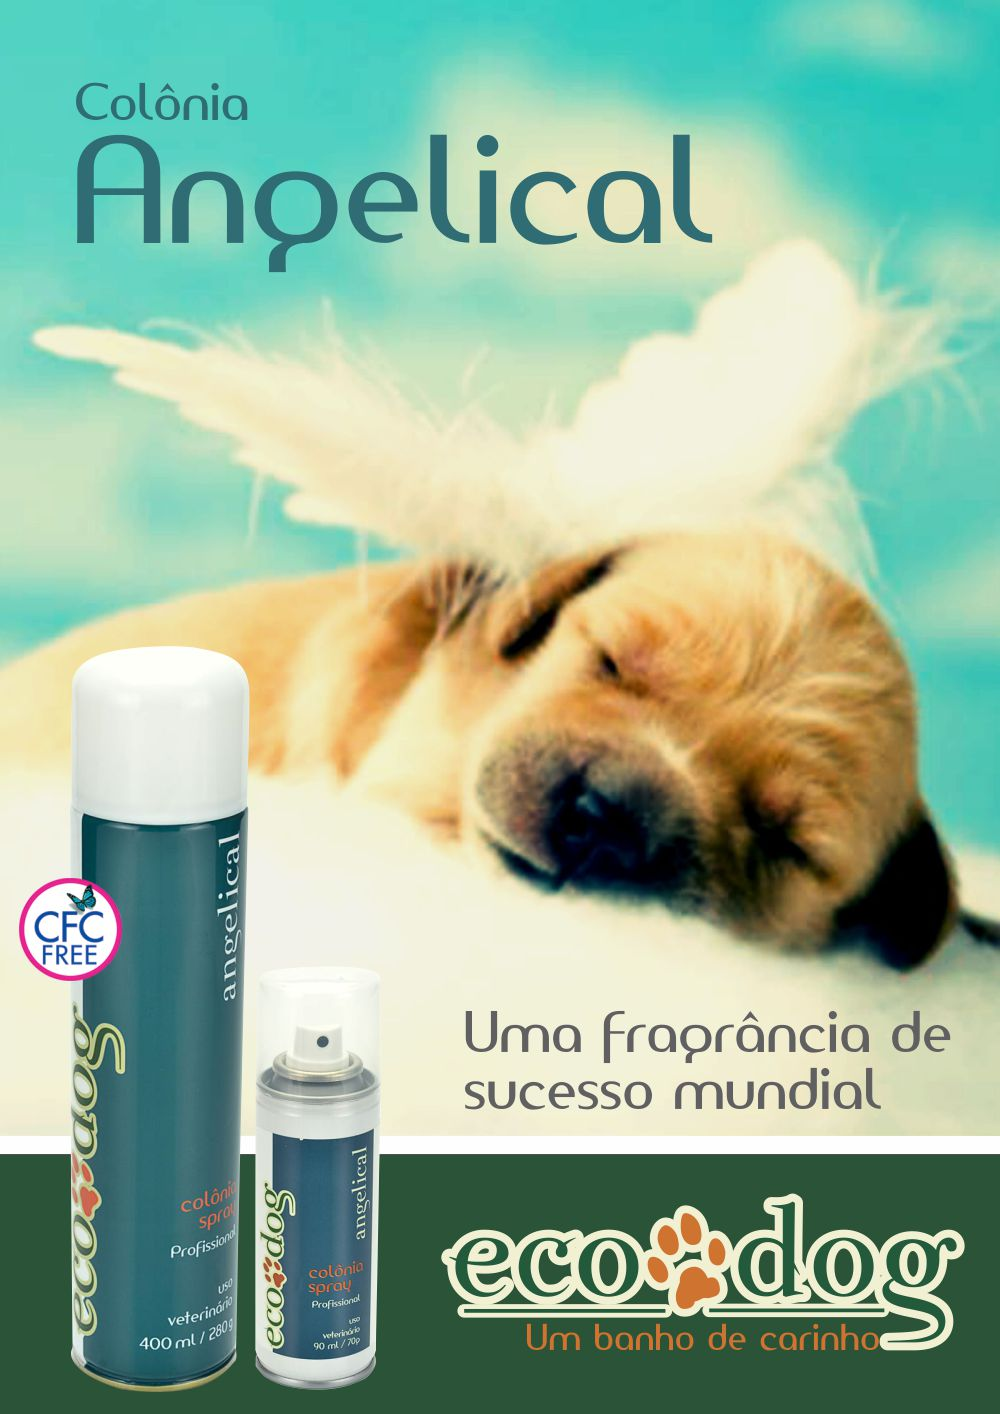 ecodog-poster-angelical-2014-01